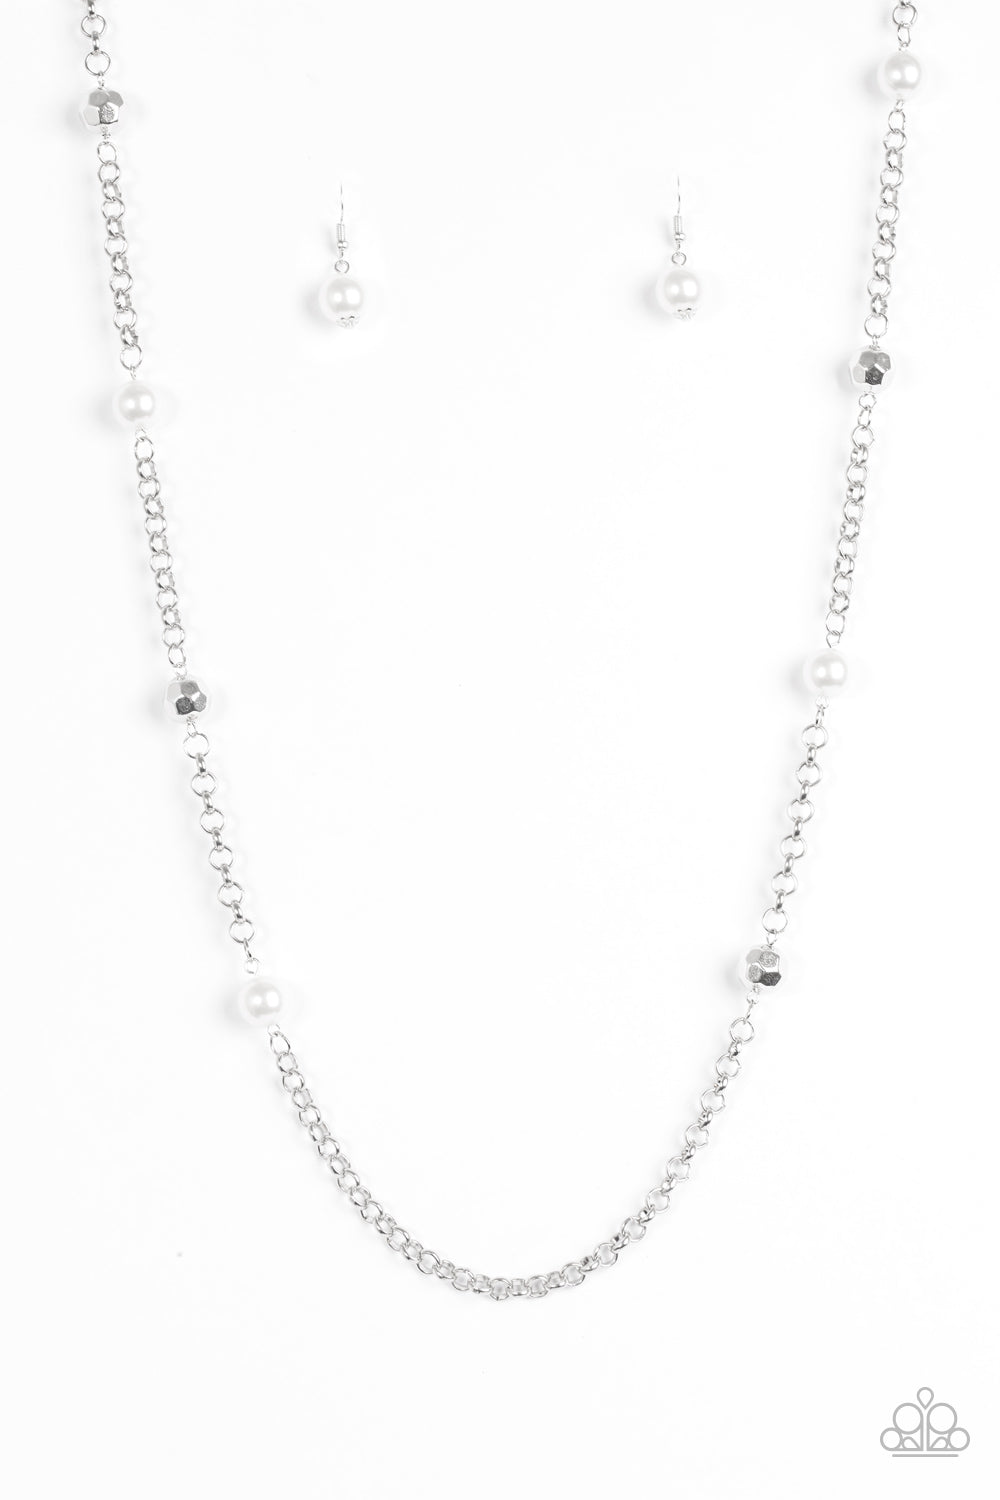 Paparazzi Accessories - Paparazzi Necklace - Showroom Shimmer - Pearly Brass - Necklaces